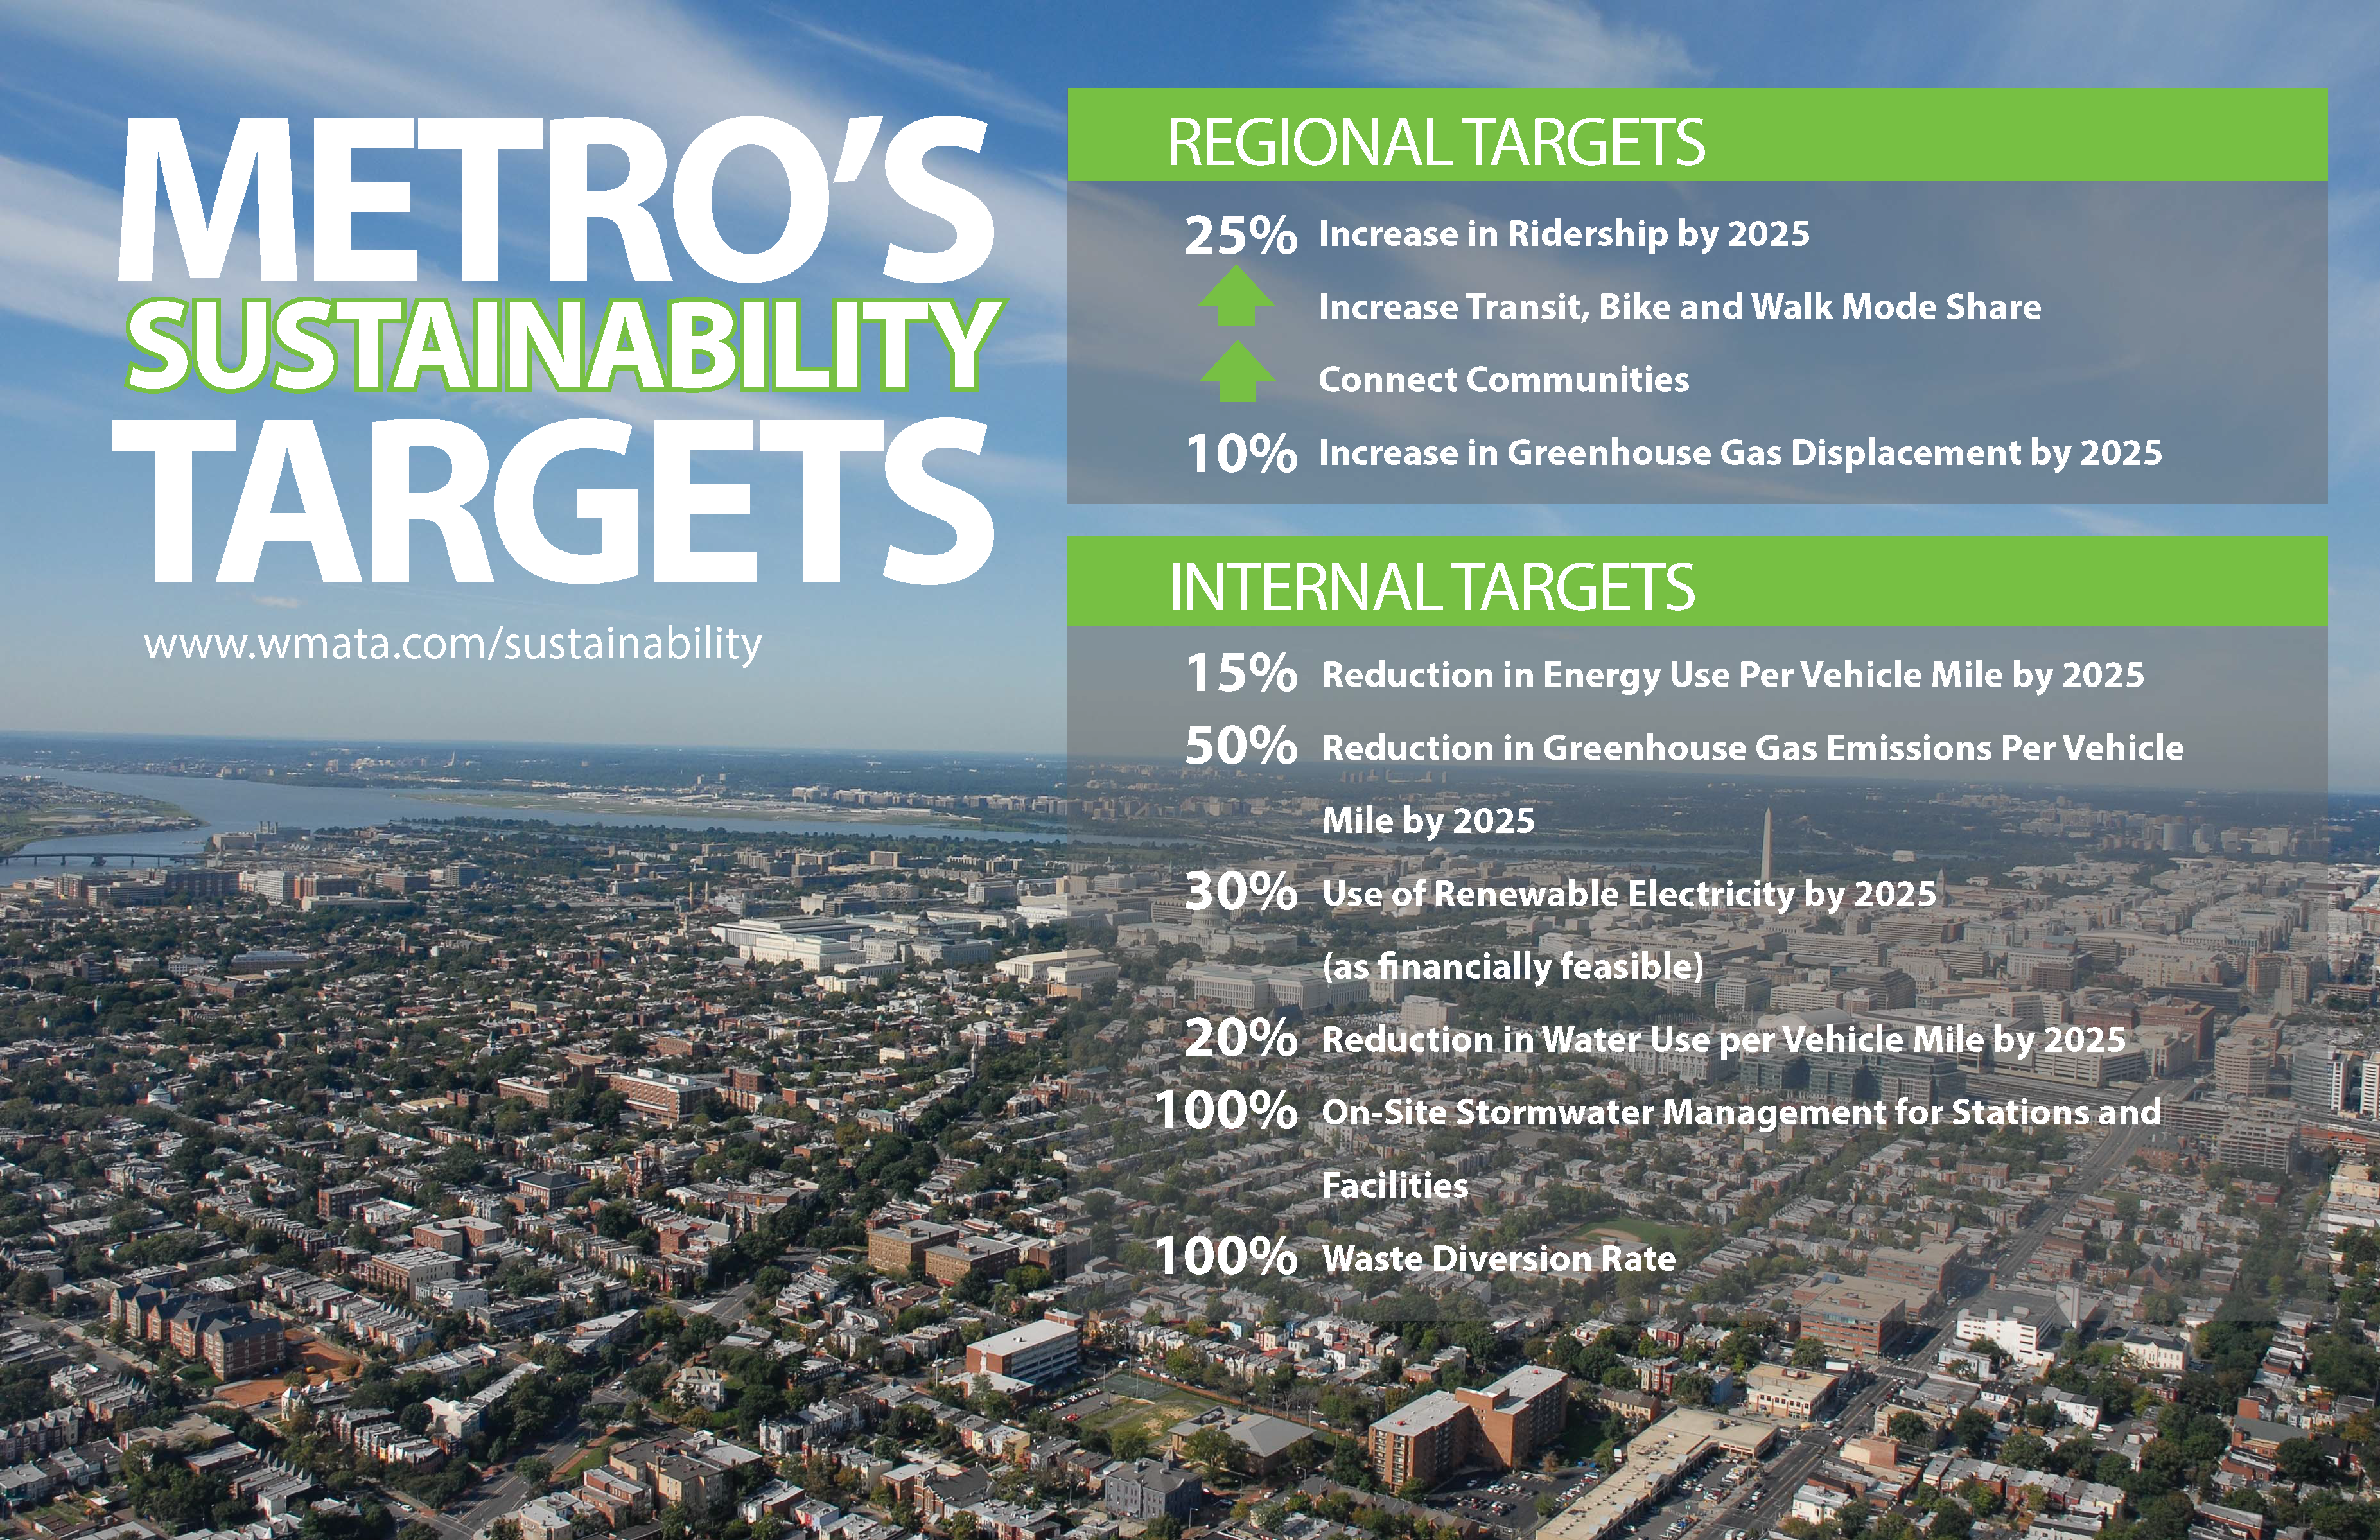 Metro's Sustainability Targets